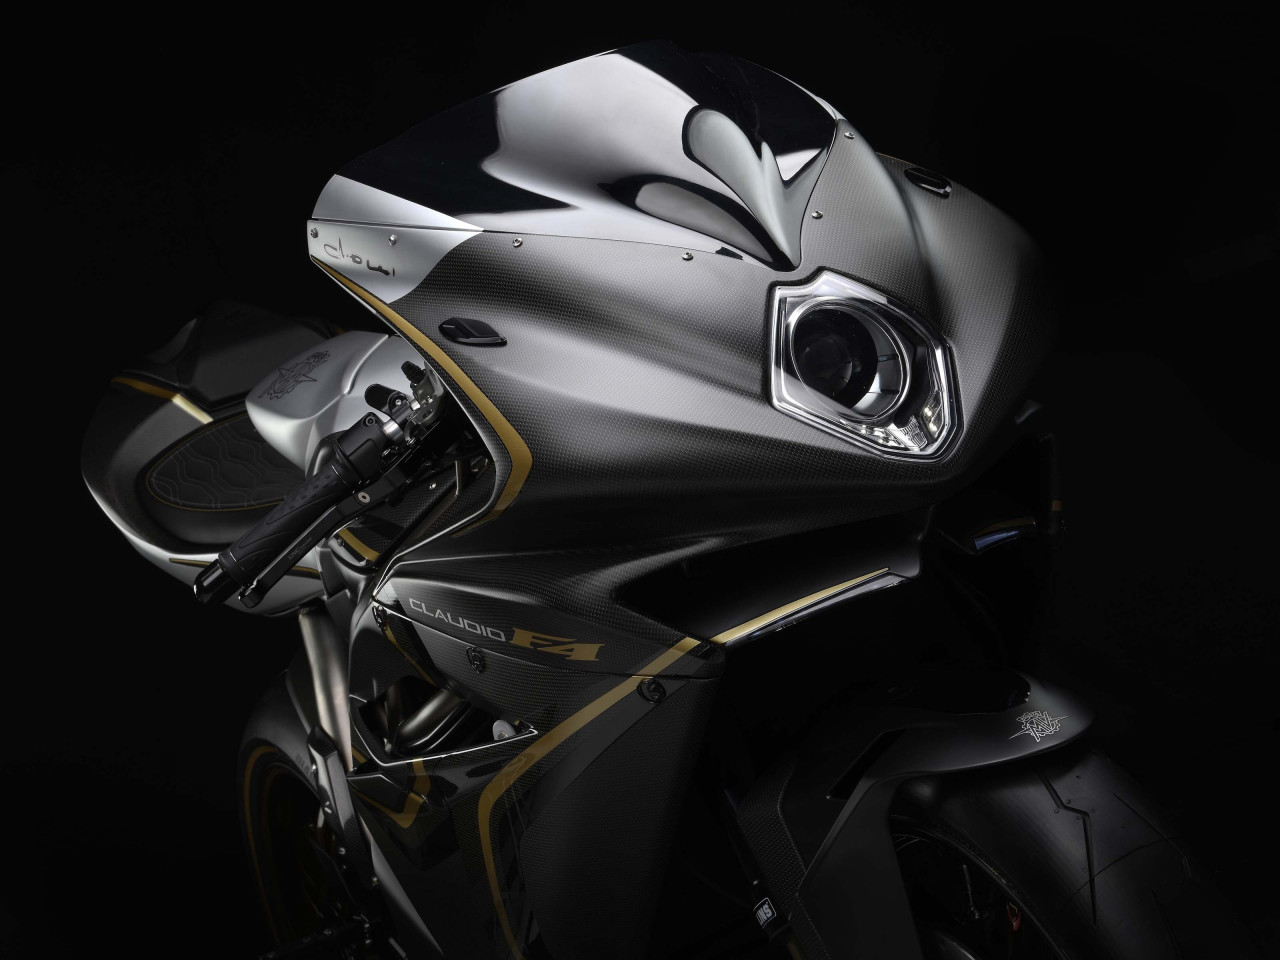 MV Agusta F4 Claudio wallpaper 1280x960